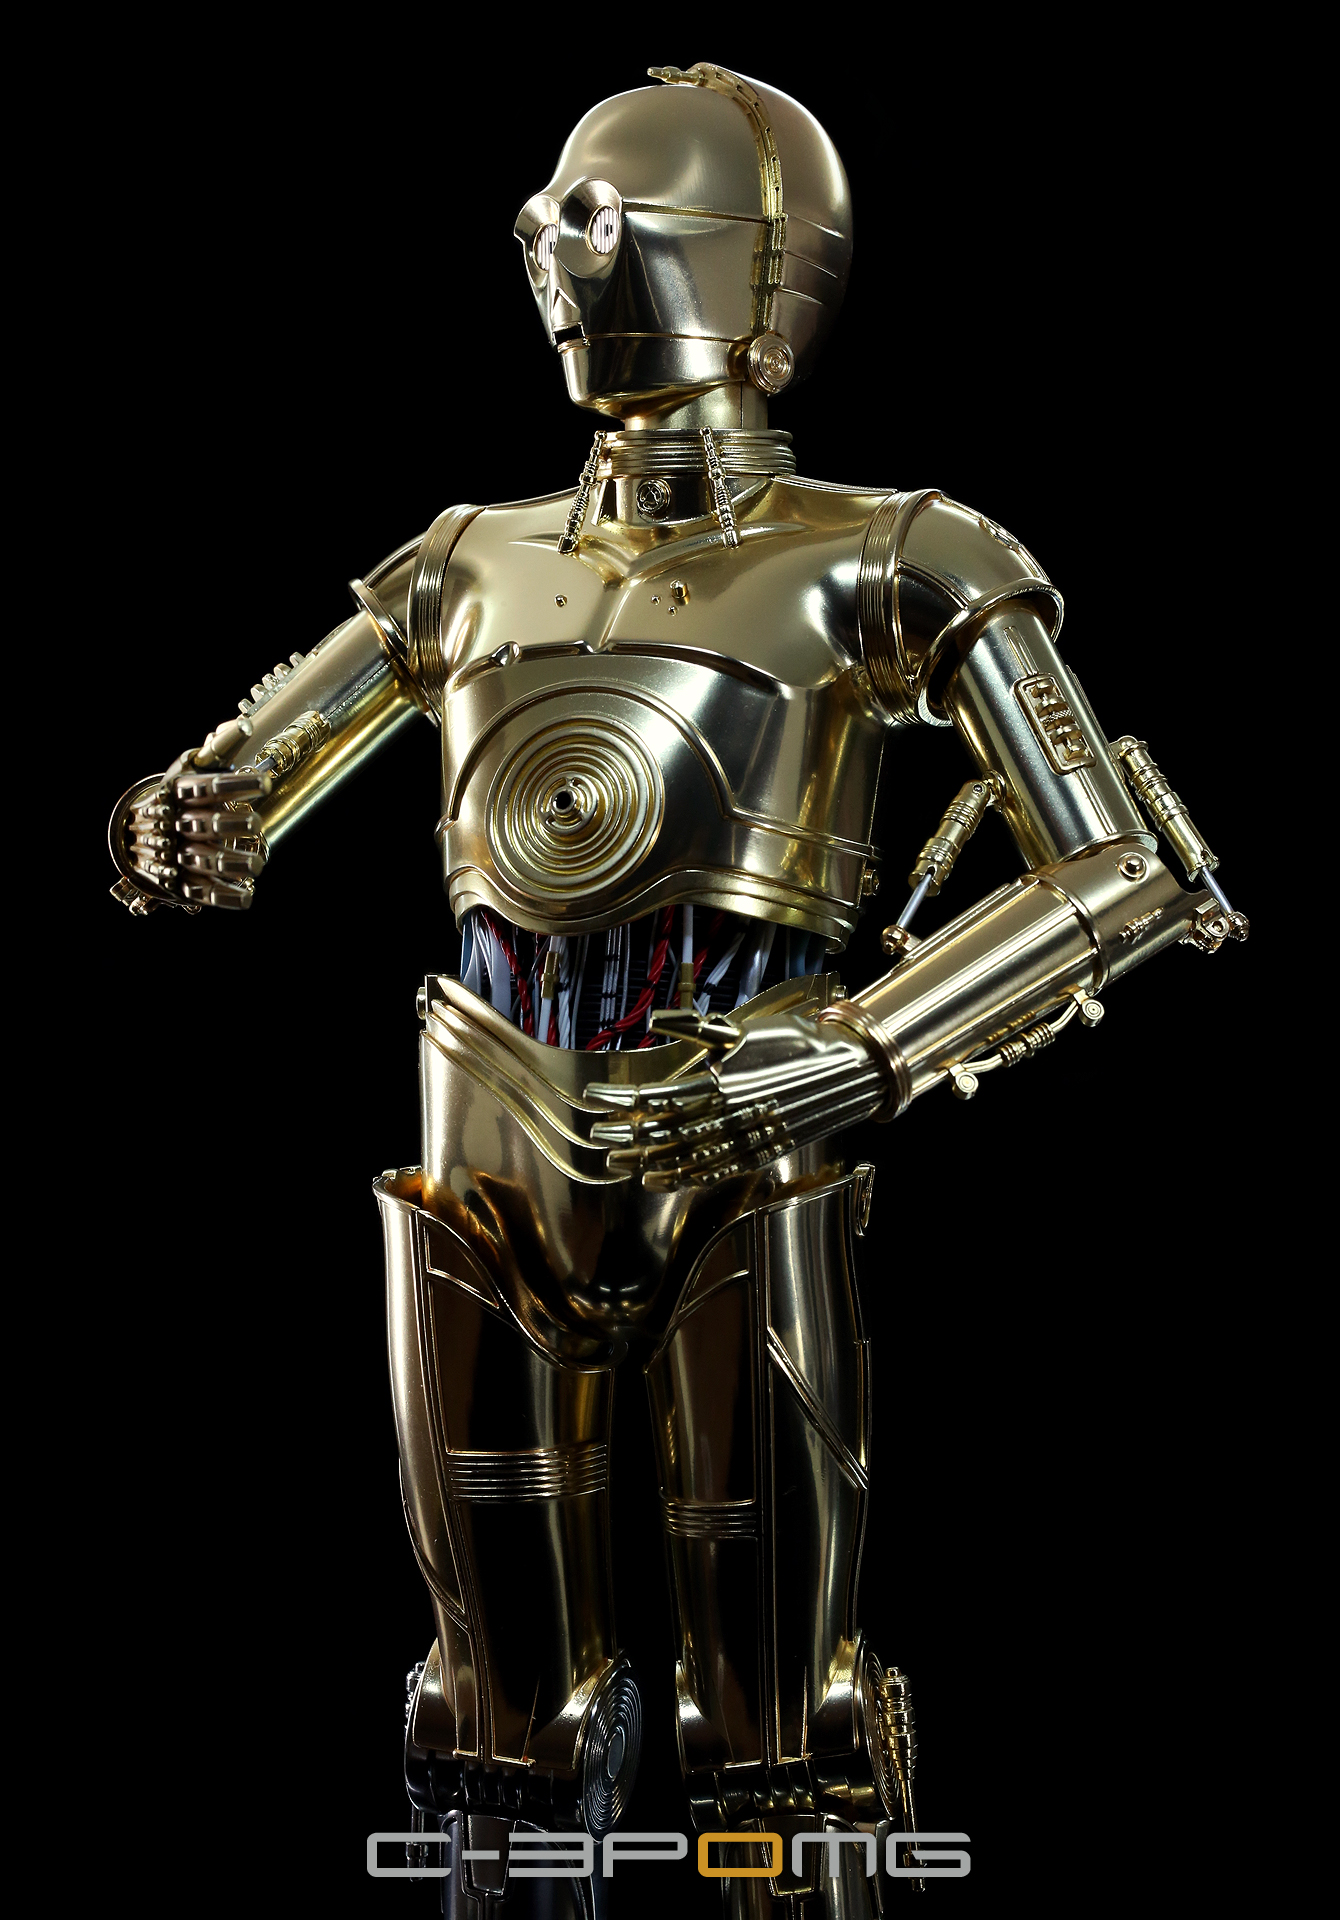 [Bandai] Star Wars: C-3PO - Perfect Model 1/6 scale - LANÇADO!!! - Página 2 C-3PO1019_zps8d813d50